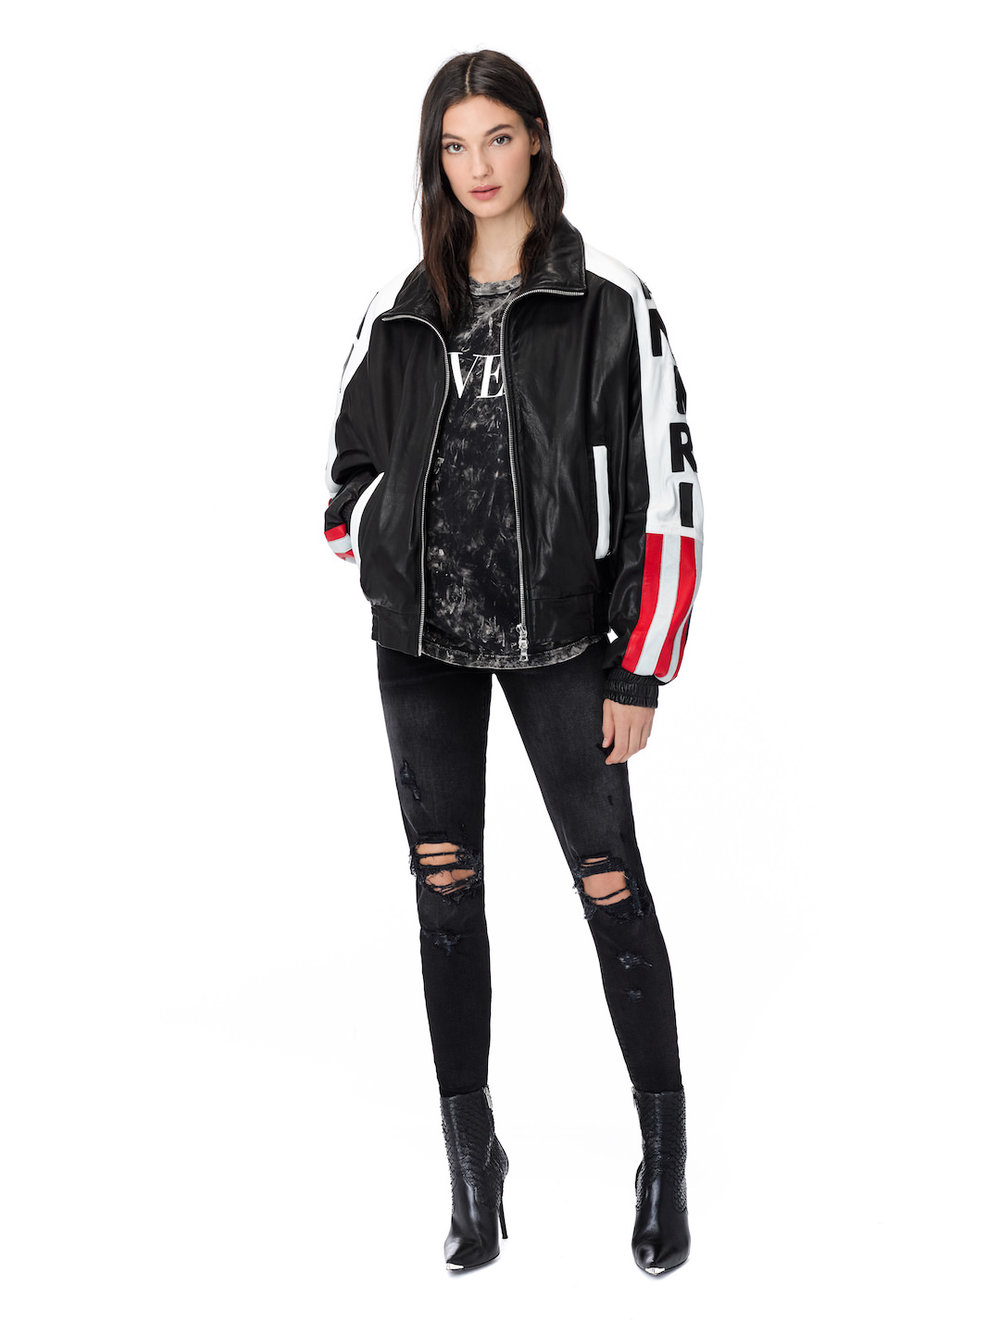 AMIRI SS19 WOMENS ECOMM_MAUS_7 AMIRI FLAG LEATHER BOMBER BLACK.265294 copy 2.jpg